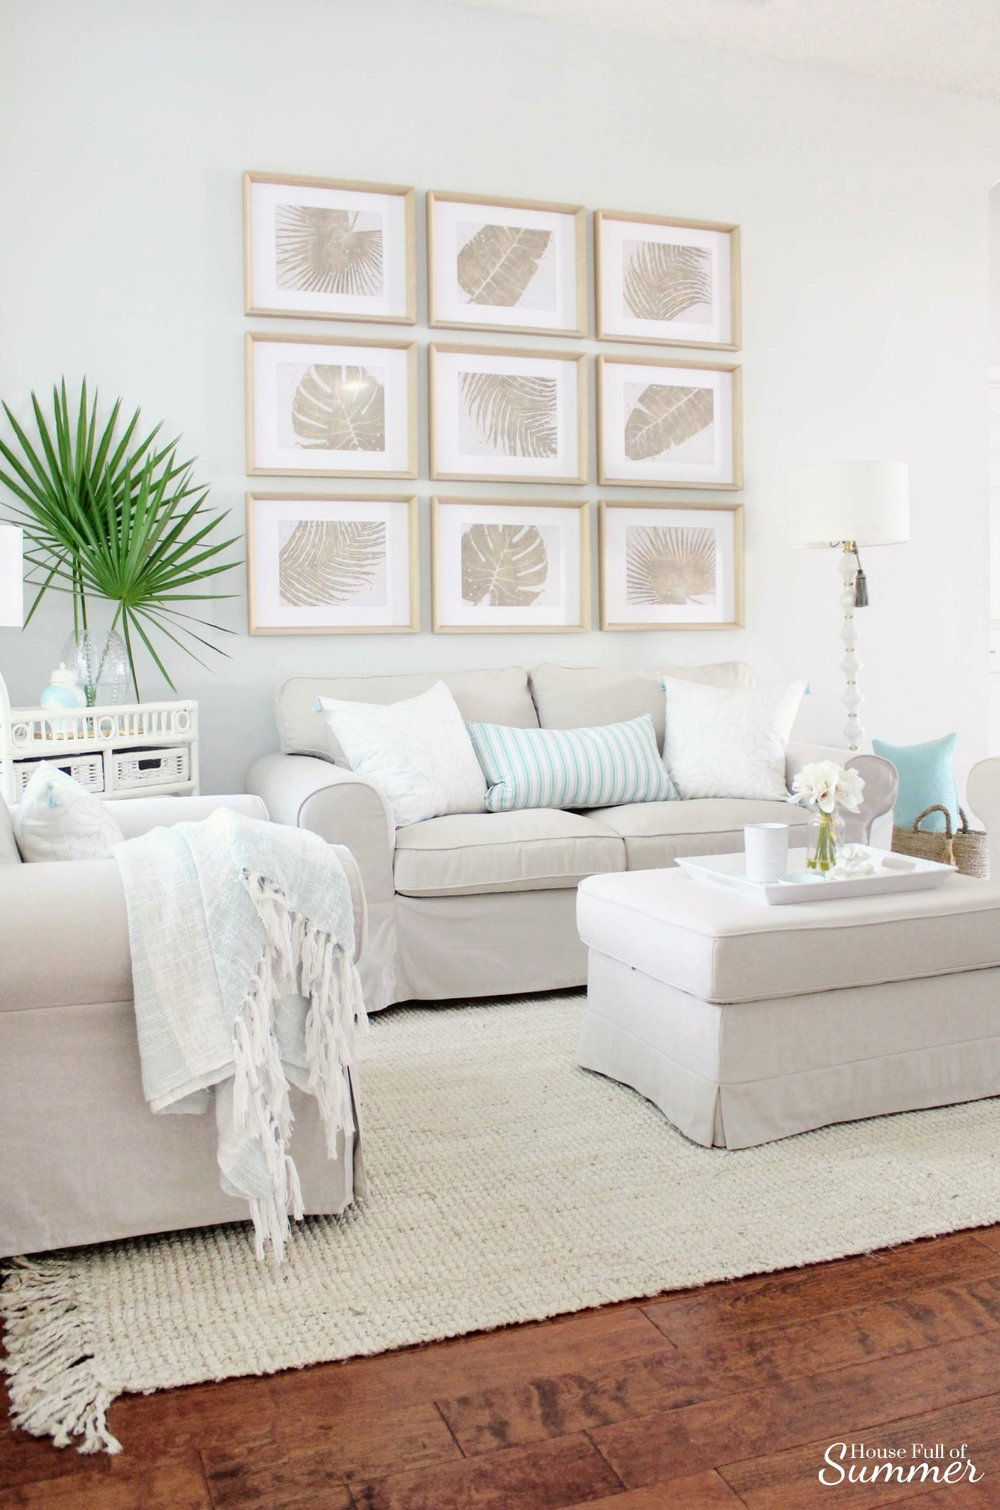 Adding Spring Color to the Living Room and Foyer | House Full of Summer - spring decor, coastal decor, neutral interior, turquoise accents, console table, round mirror, fiddle leaf fig, decorating with palm fronds, entryway, lighting, Florida home decor ideas, slip covered furniture, jute rug, beach house style, cane bar cart, DIY spray paint, budget decor, rattan bar cart, bamboo cart, accent table, spring home tour, chinoiserie chic, gallery wall